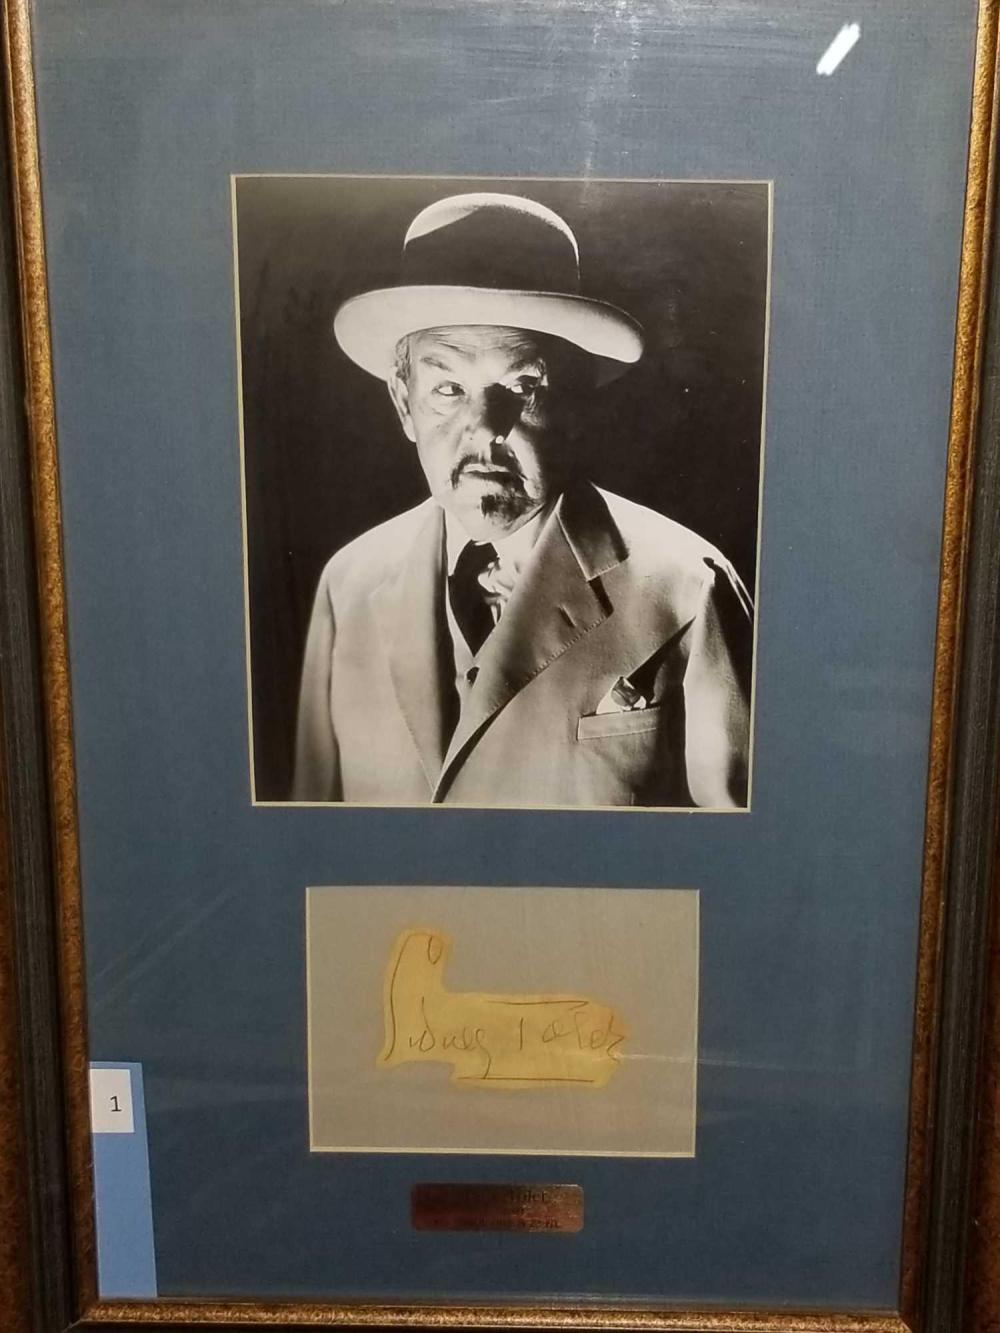 SIDNEY TOLER FRAMED & MATTED PHOTO & AUTOGRAPH